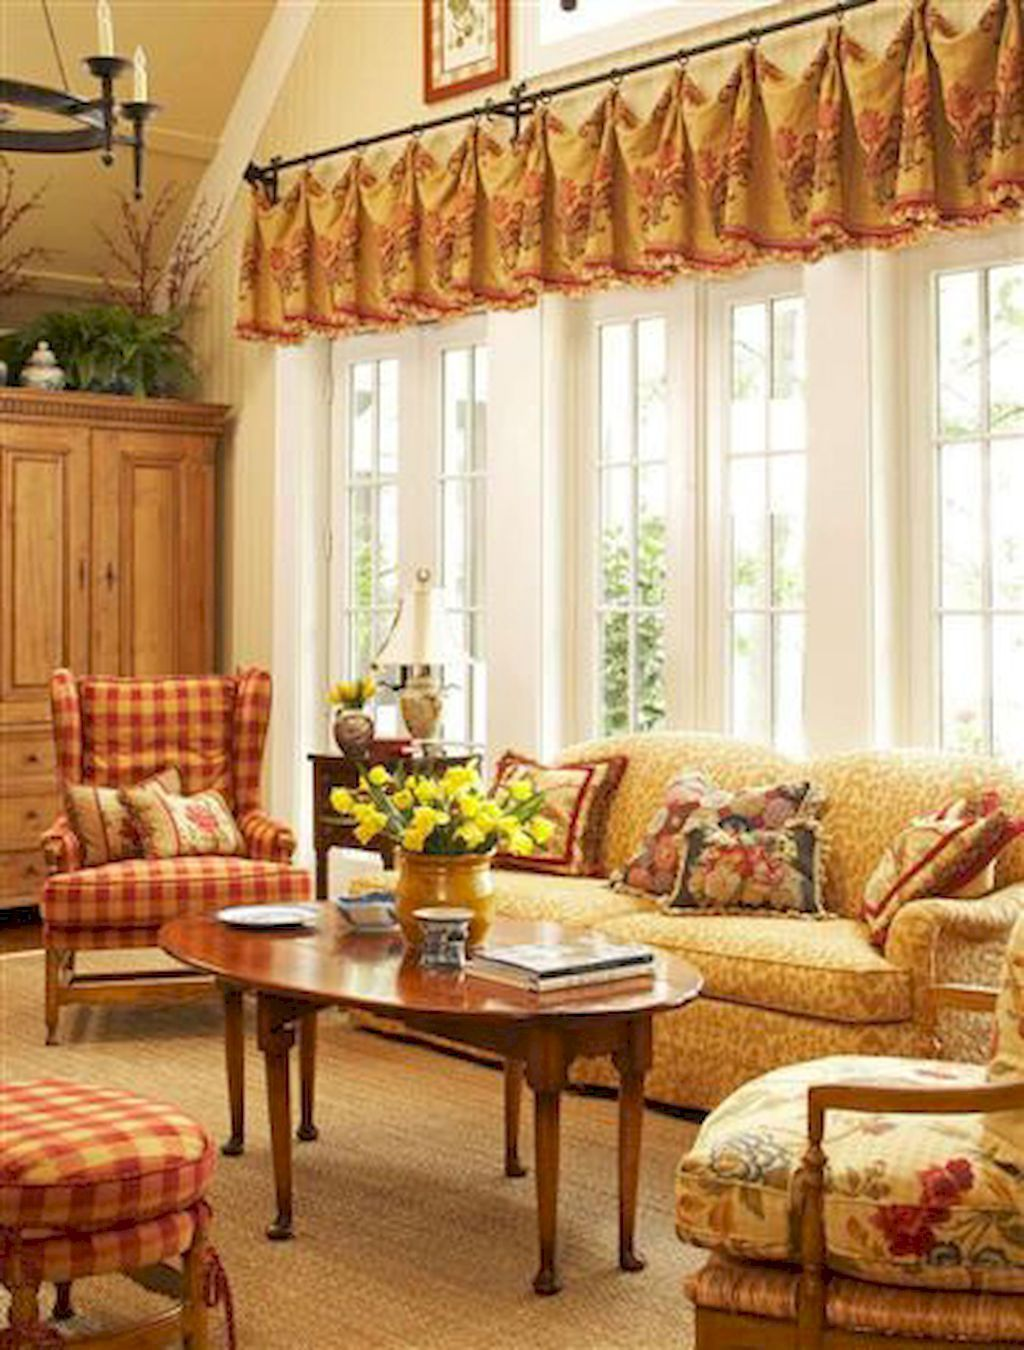 48 Fabulous French Country Living Room Design Ideas